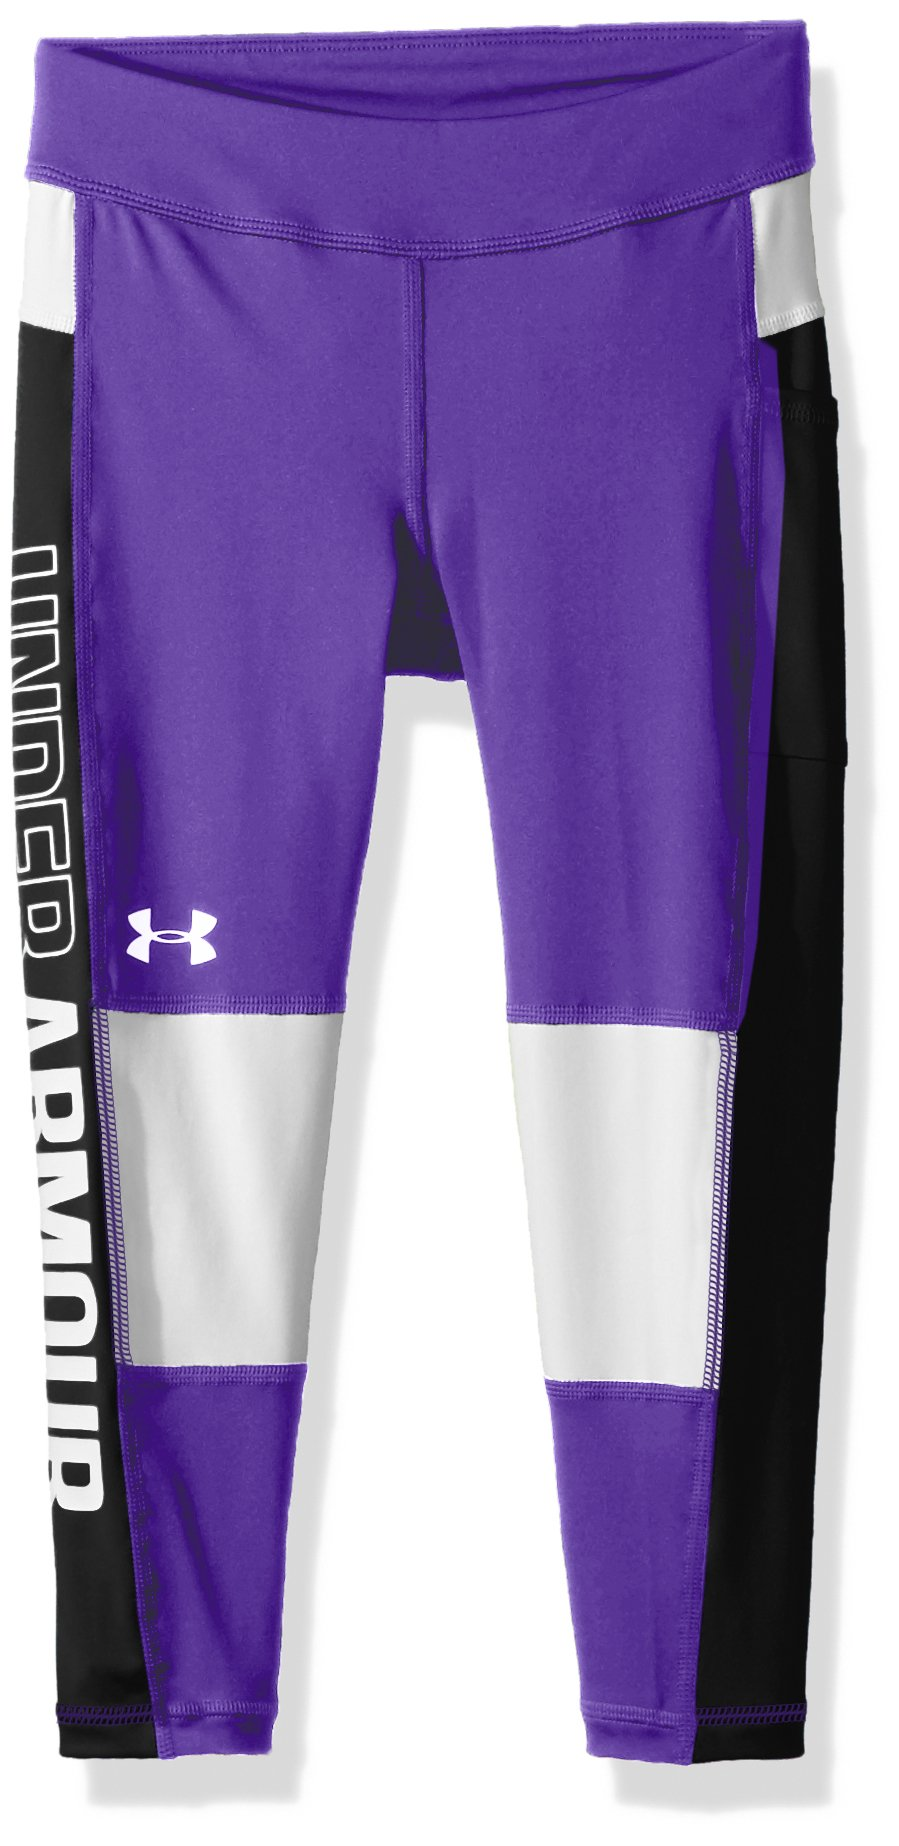 Under Armour Girls' Color Block Crop Capris, Constellation Purple /White, Youth X-Small